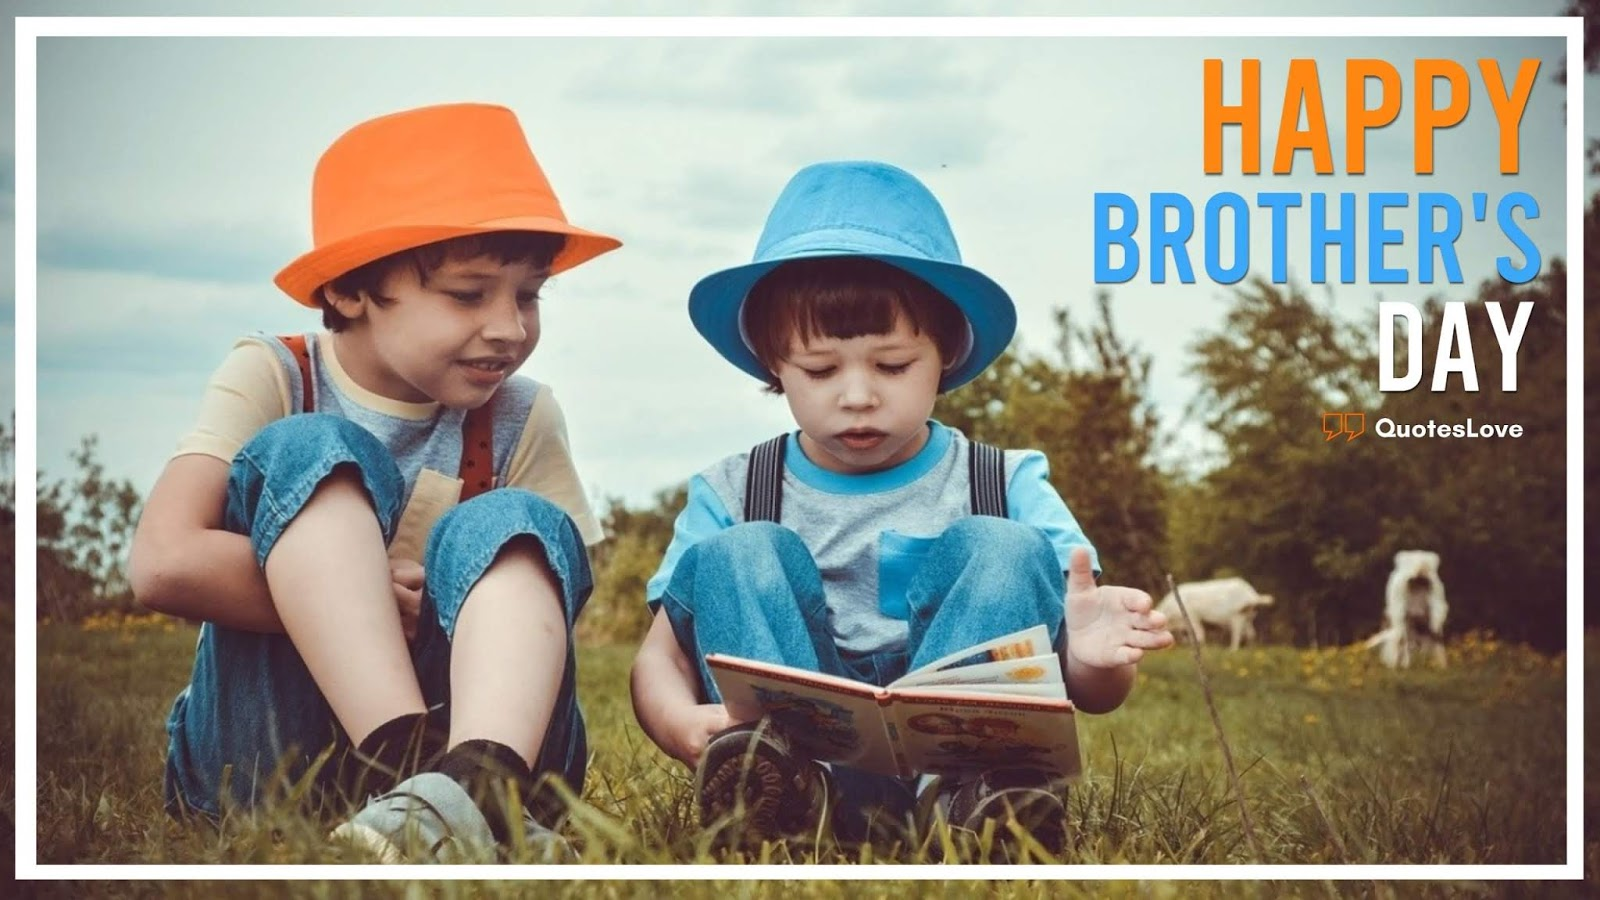 Brother's Day Quotes, Messages, Sayings, Wishes, Greetings, Images, Pictures, Photos, Pictures